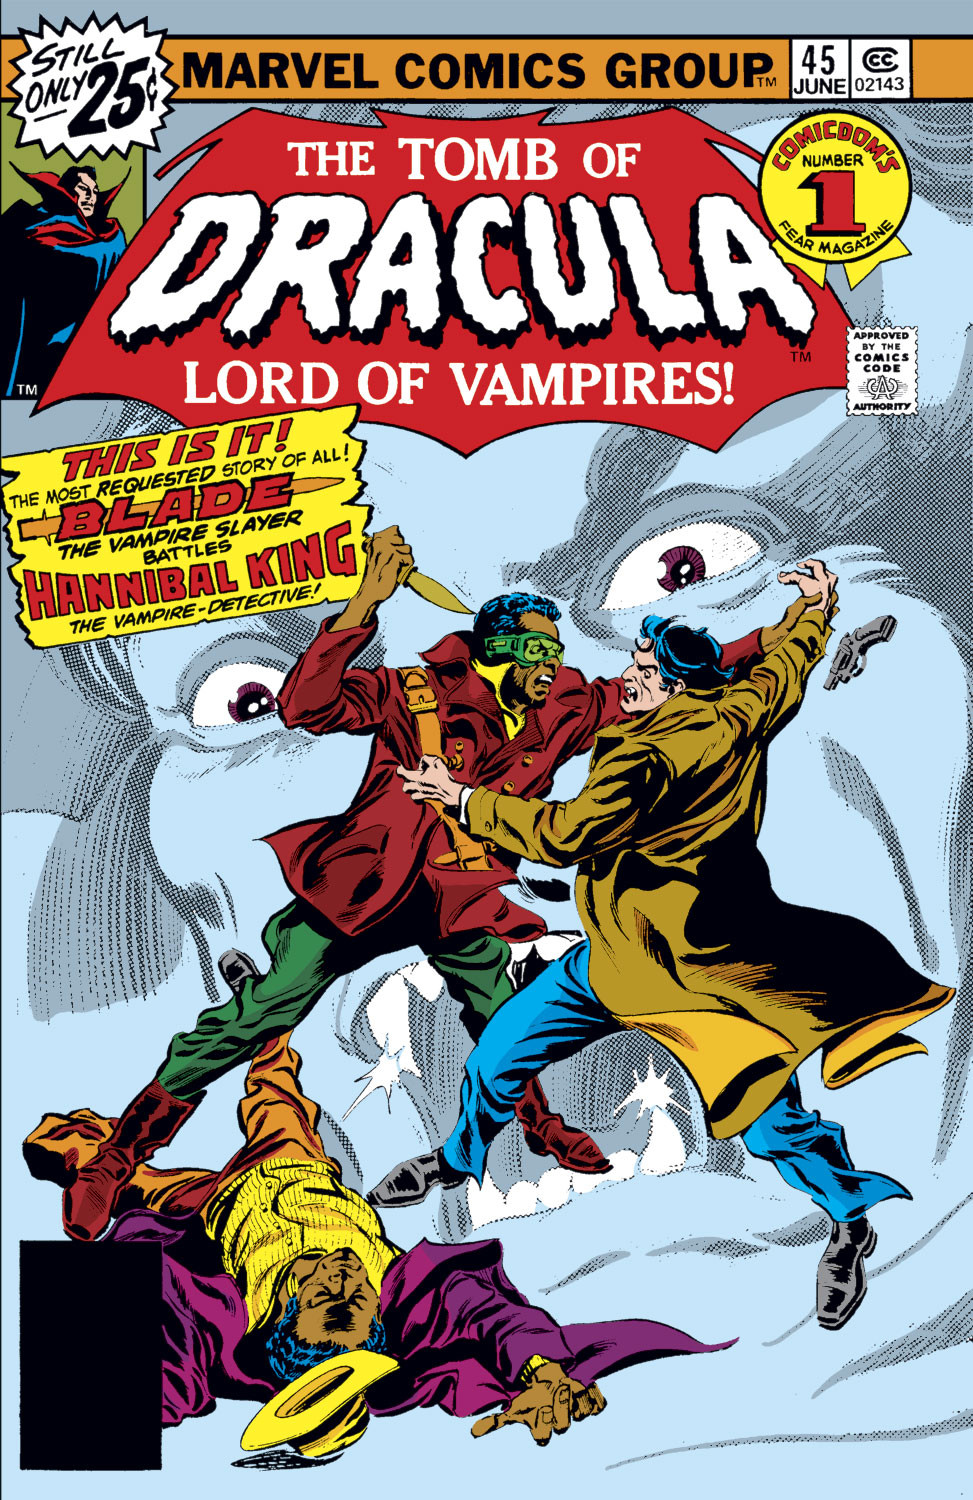 Tomb of Dracula Vol 1 45